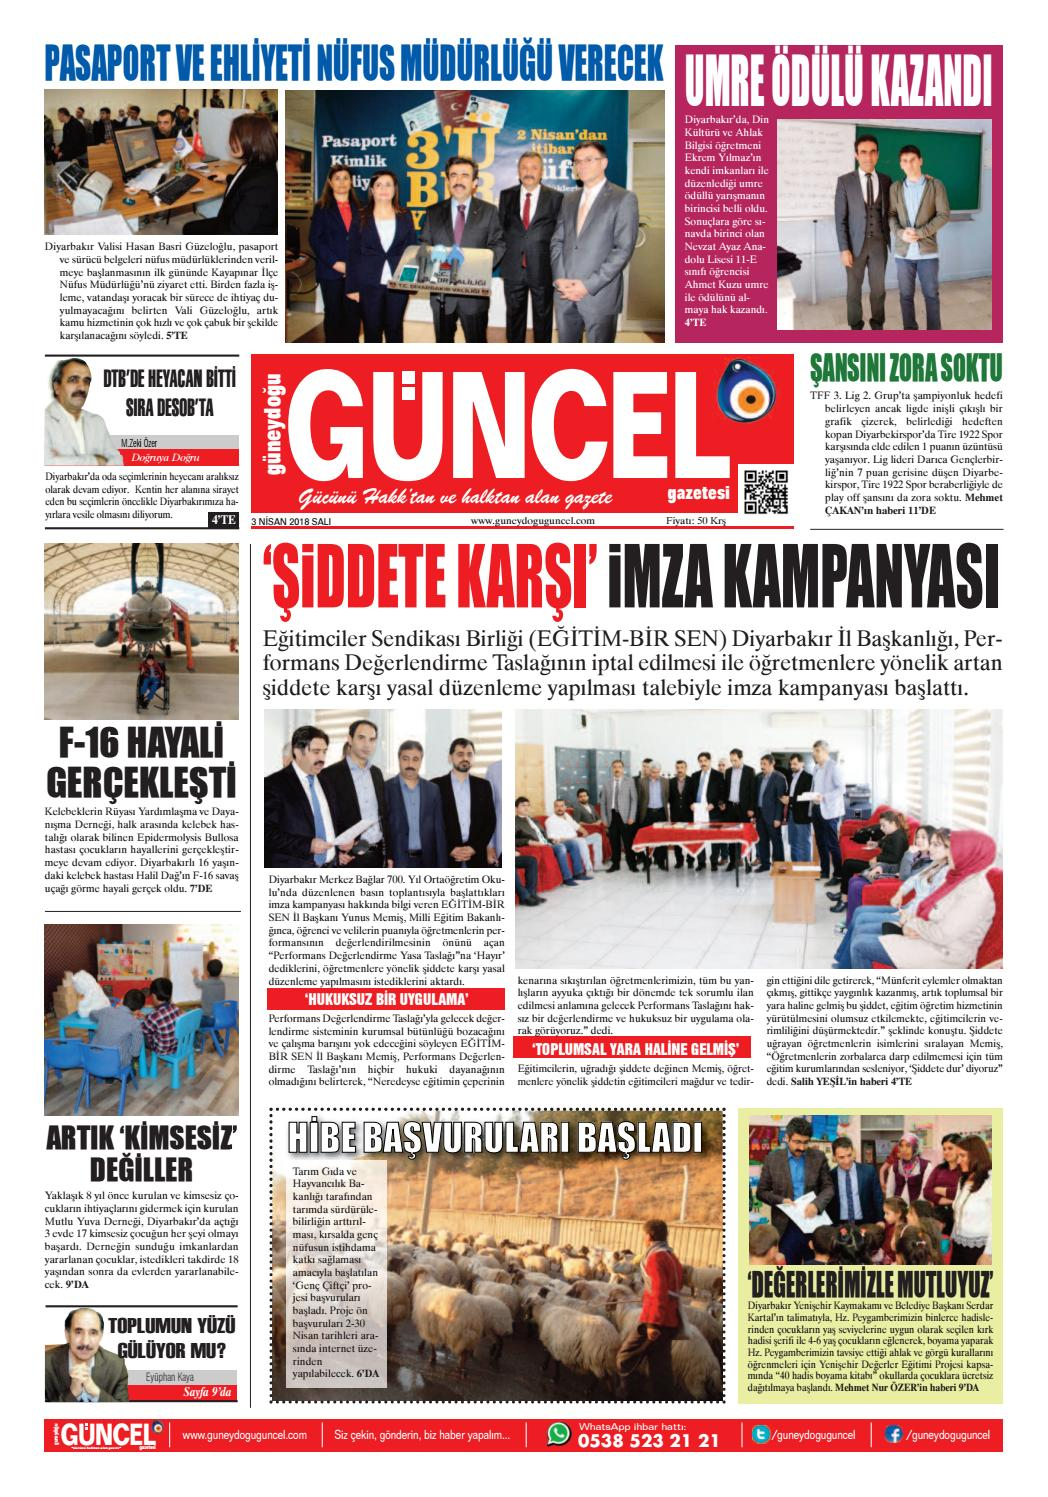 03 04 18 0 By Guneydoguguncel Issuu